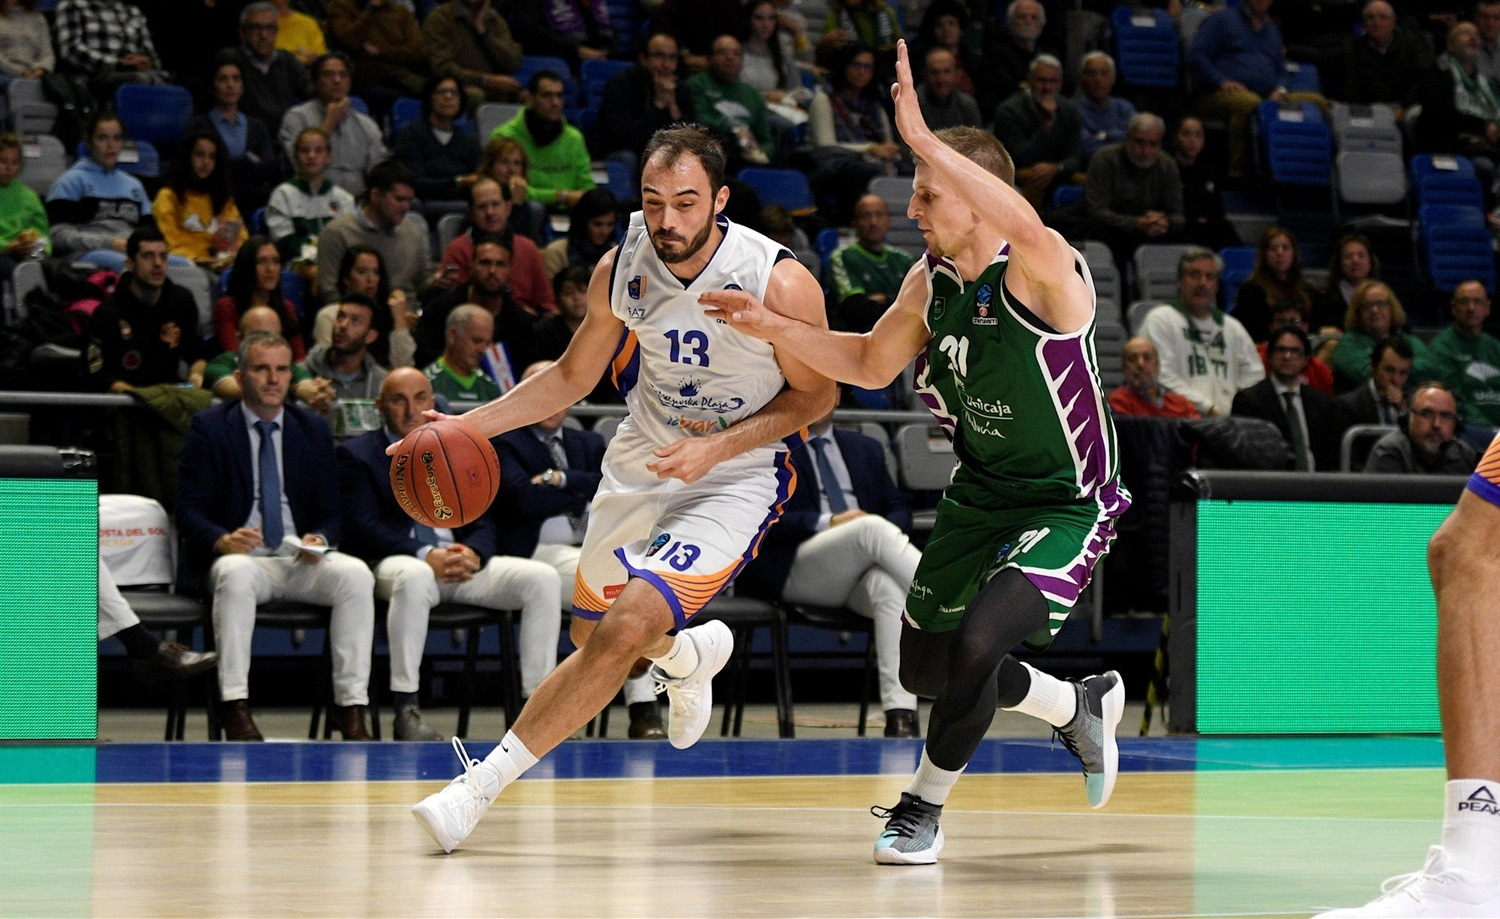 Dorde Drenovac - Mornar Bar (photo Unicaja) - EC18